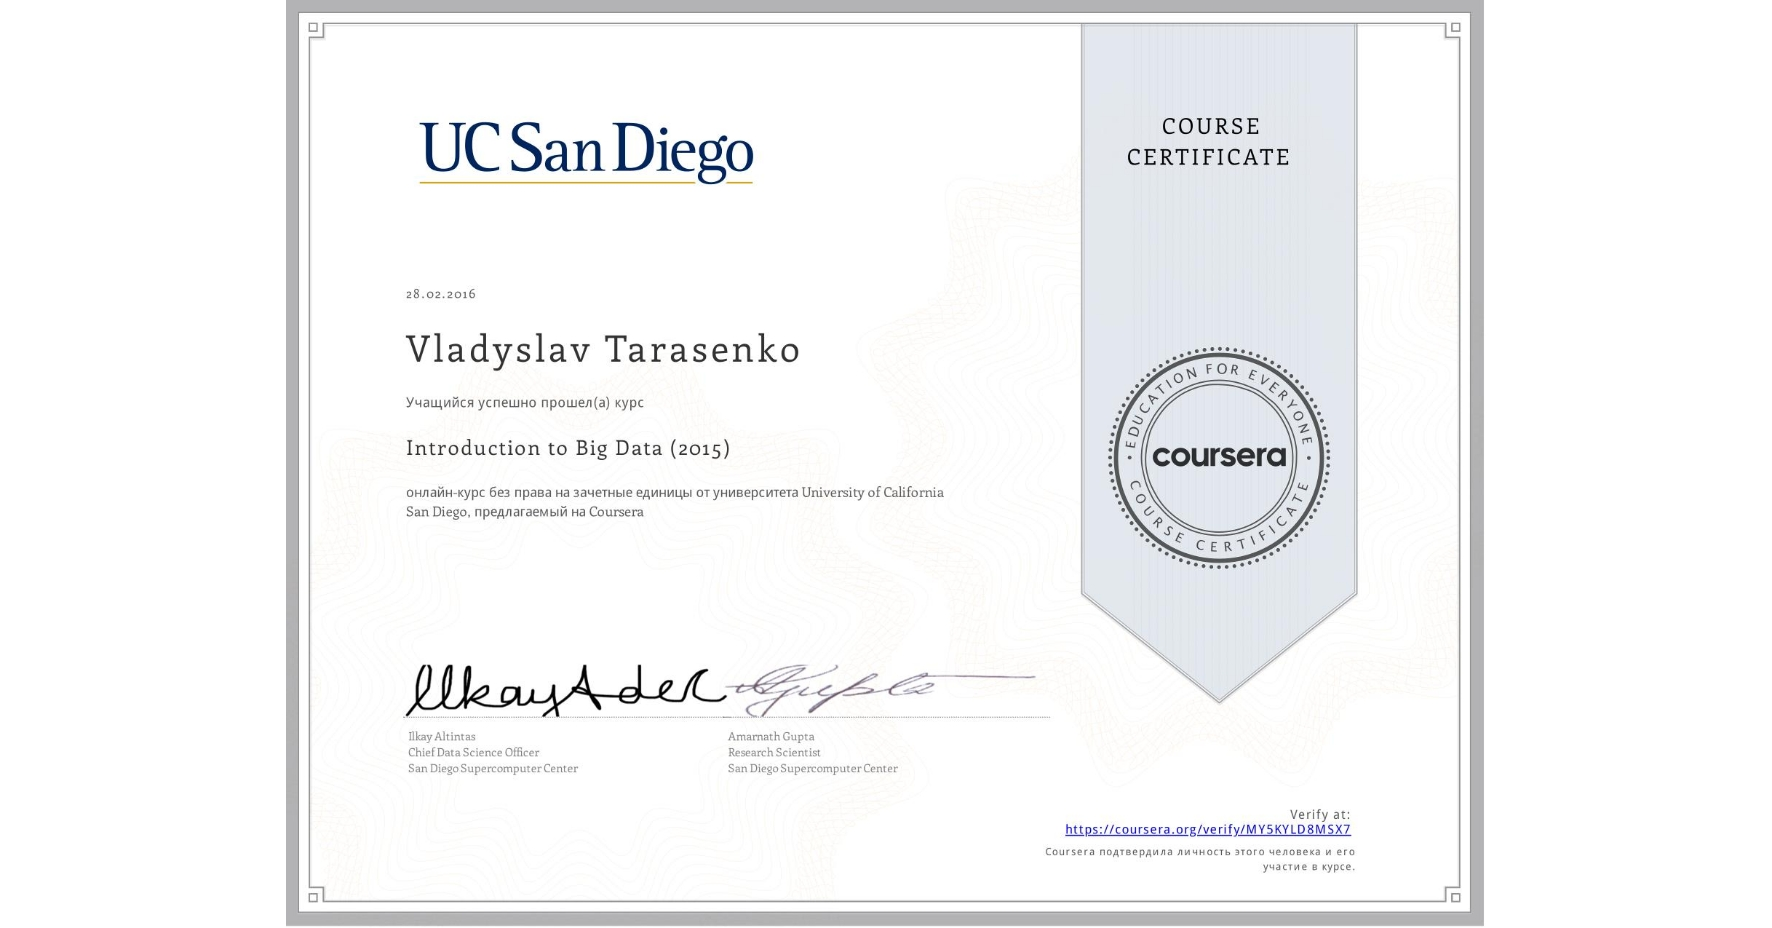 View certificate for Vladyslav Tarasenko, Introduction to Big Data (2015), an online non-credit course authorized by University of California San Diego and offered through Coursera